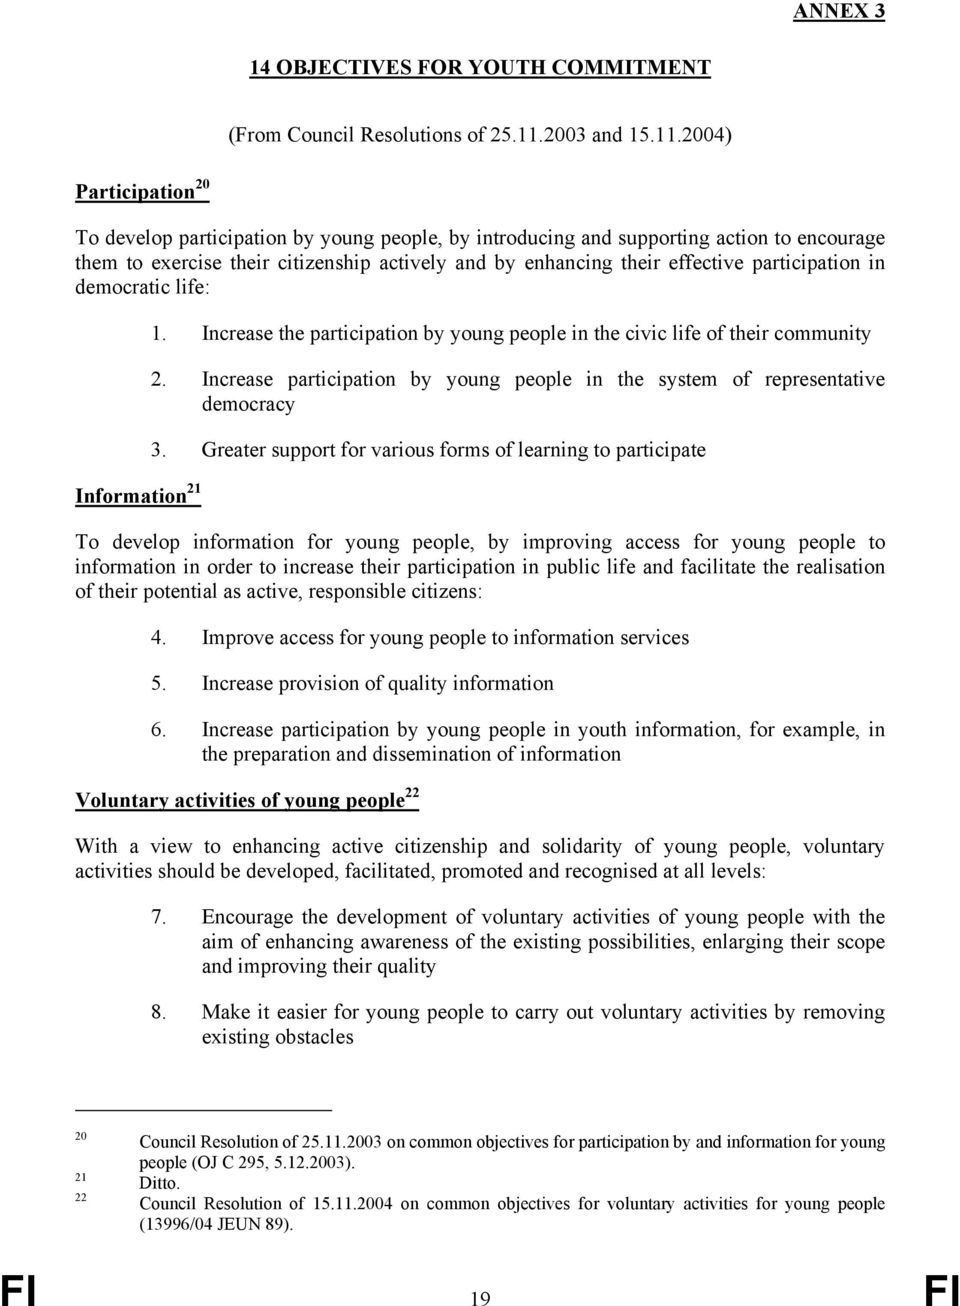 2004) Participation 20 To develop participation by young people, by introducing and supporting action to encourage them to exercise their citizenship actively and by enhancing their effective